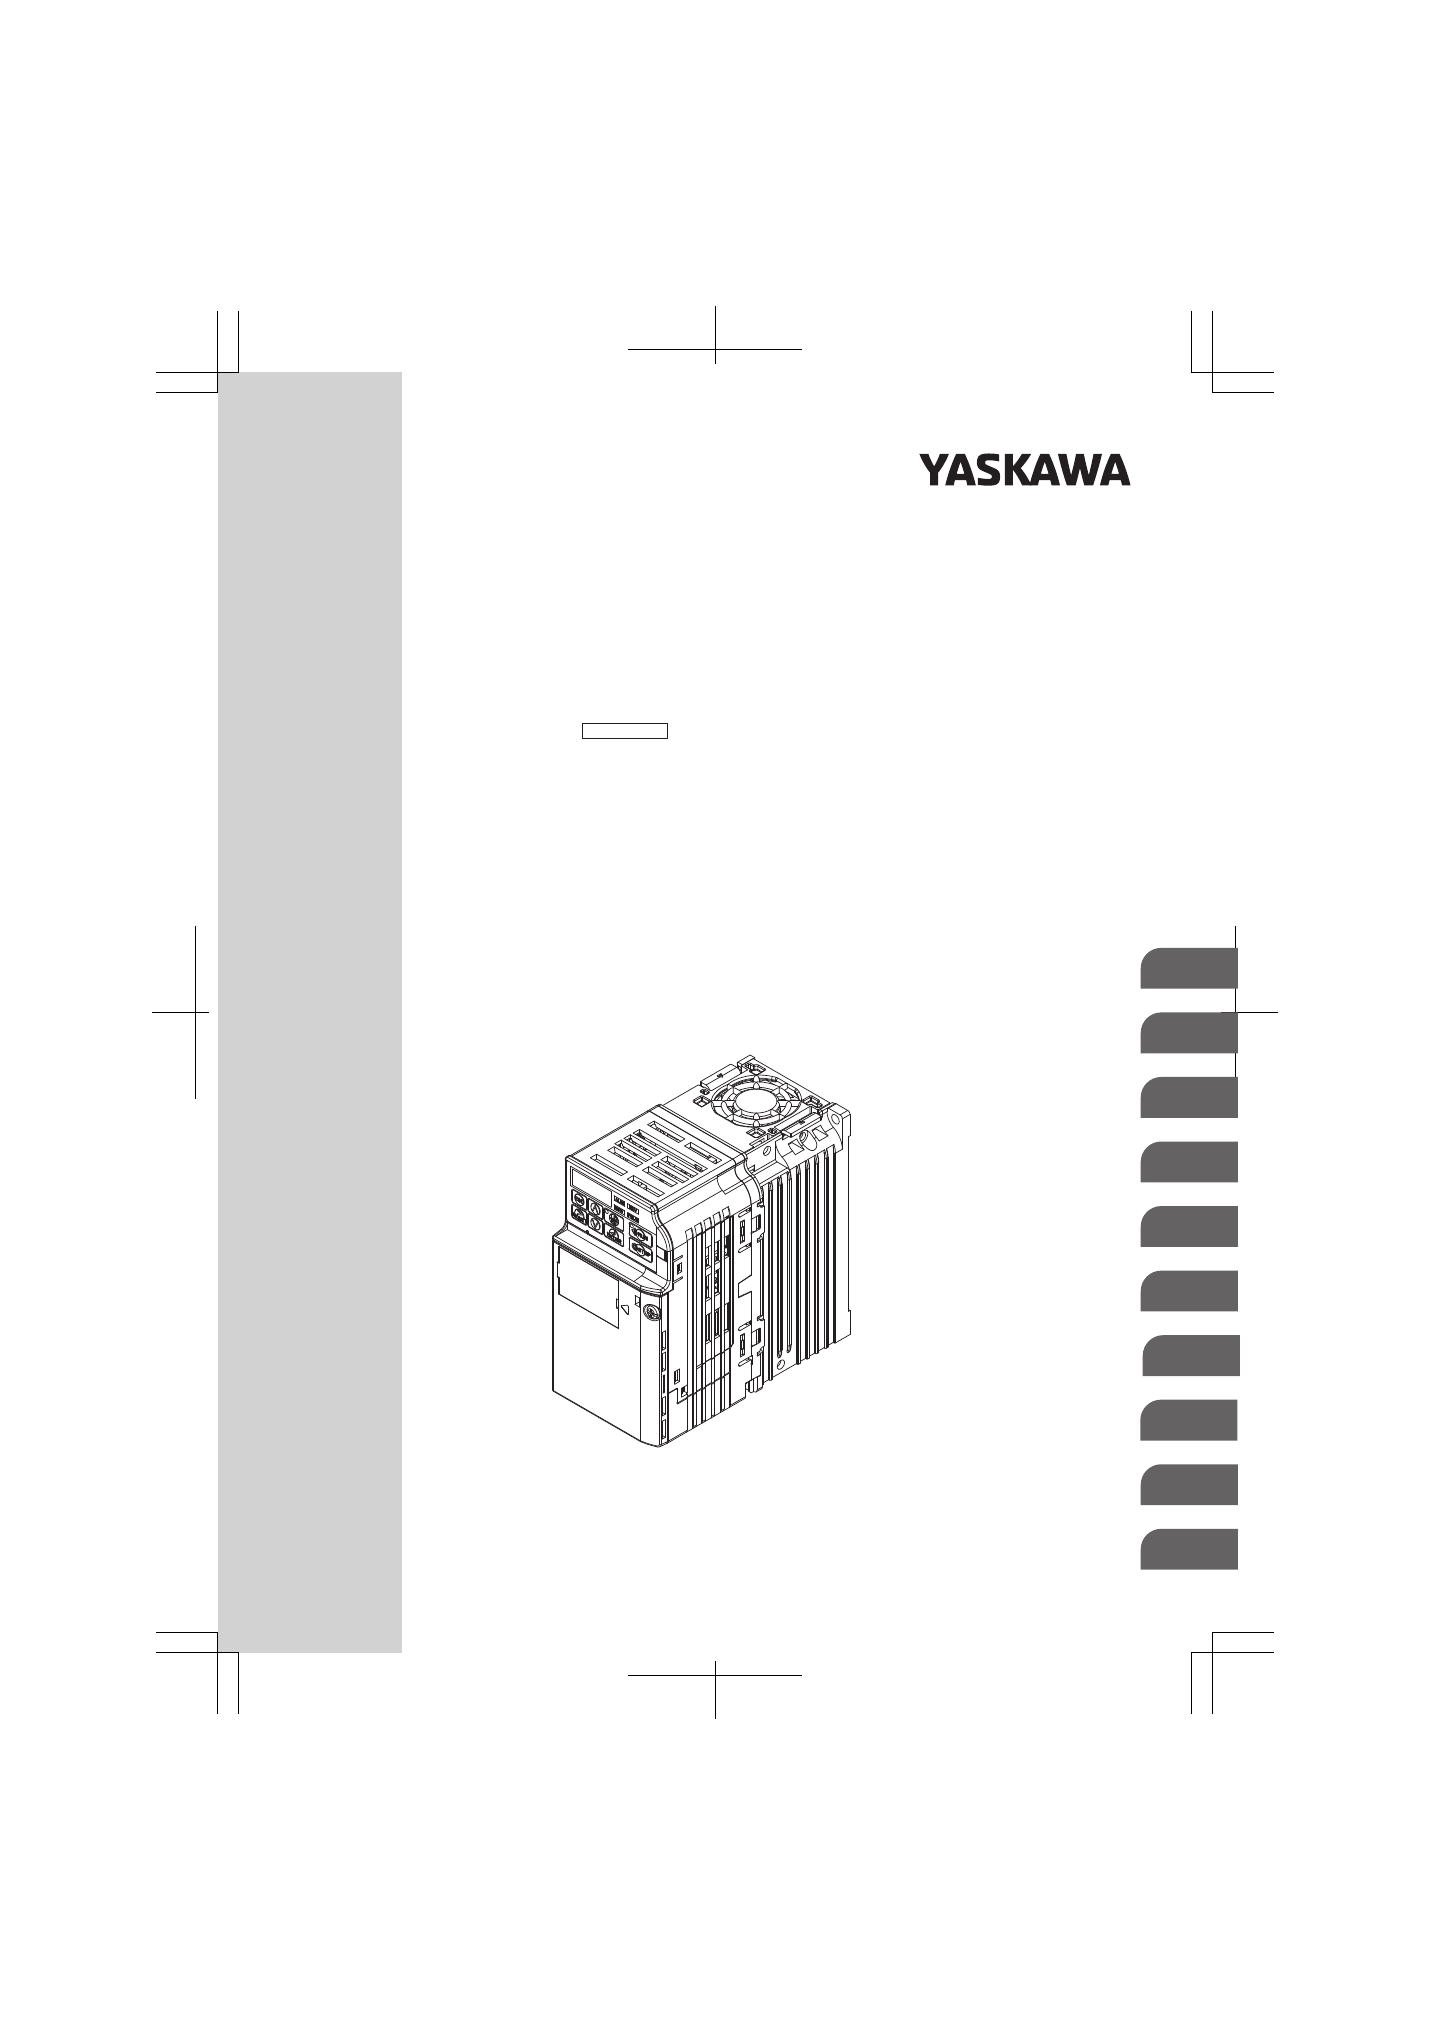 yaskawa j1000 wiring diagram open source compact v f control drive user manual 274 pages background image